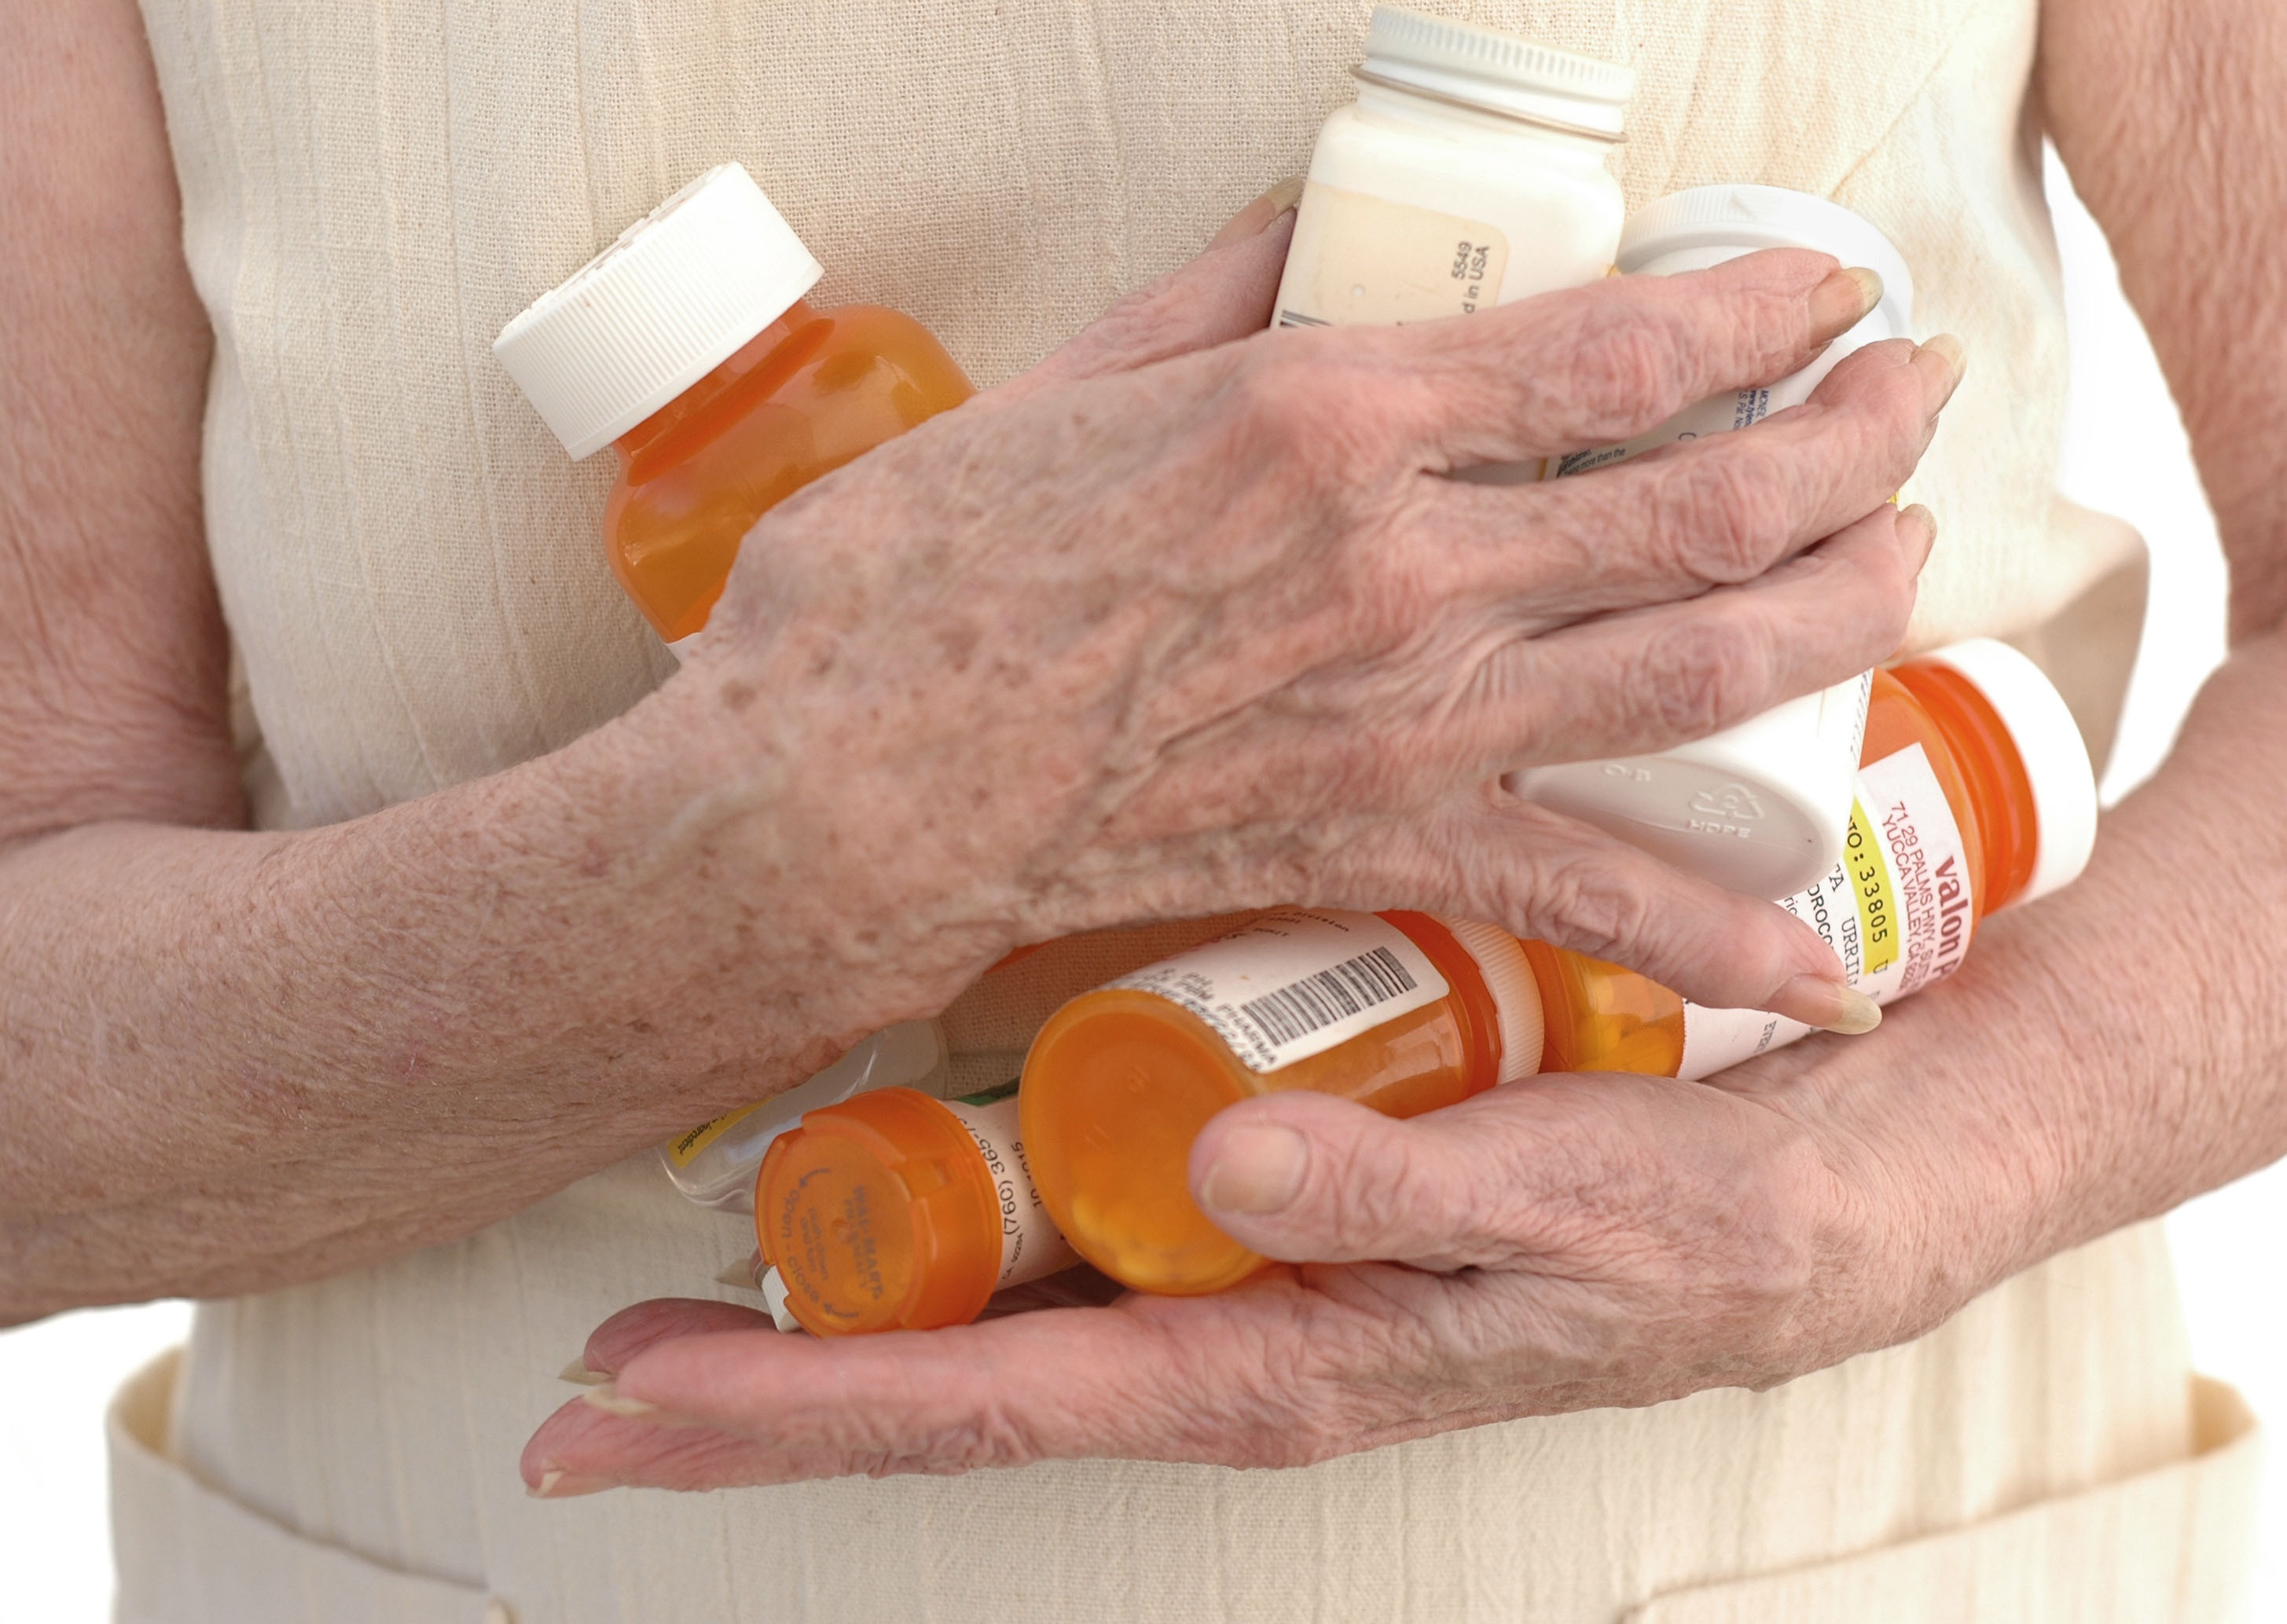 Medication Errors in the Elderly and Older Adults